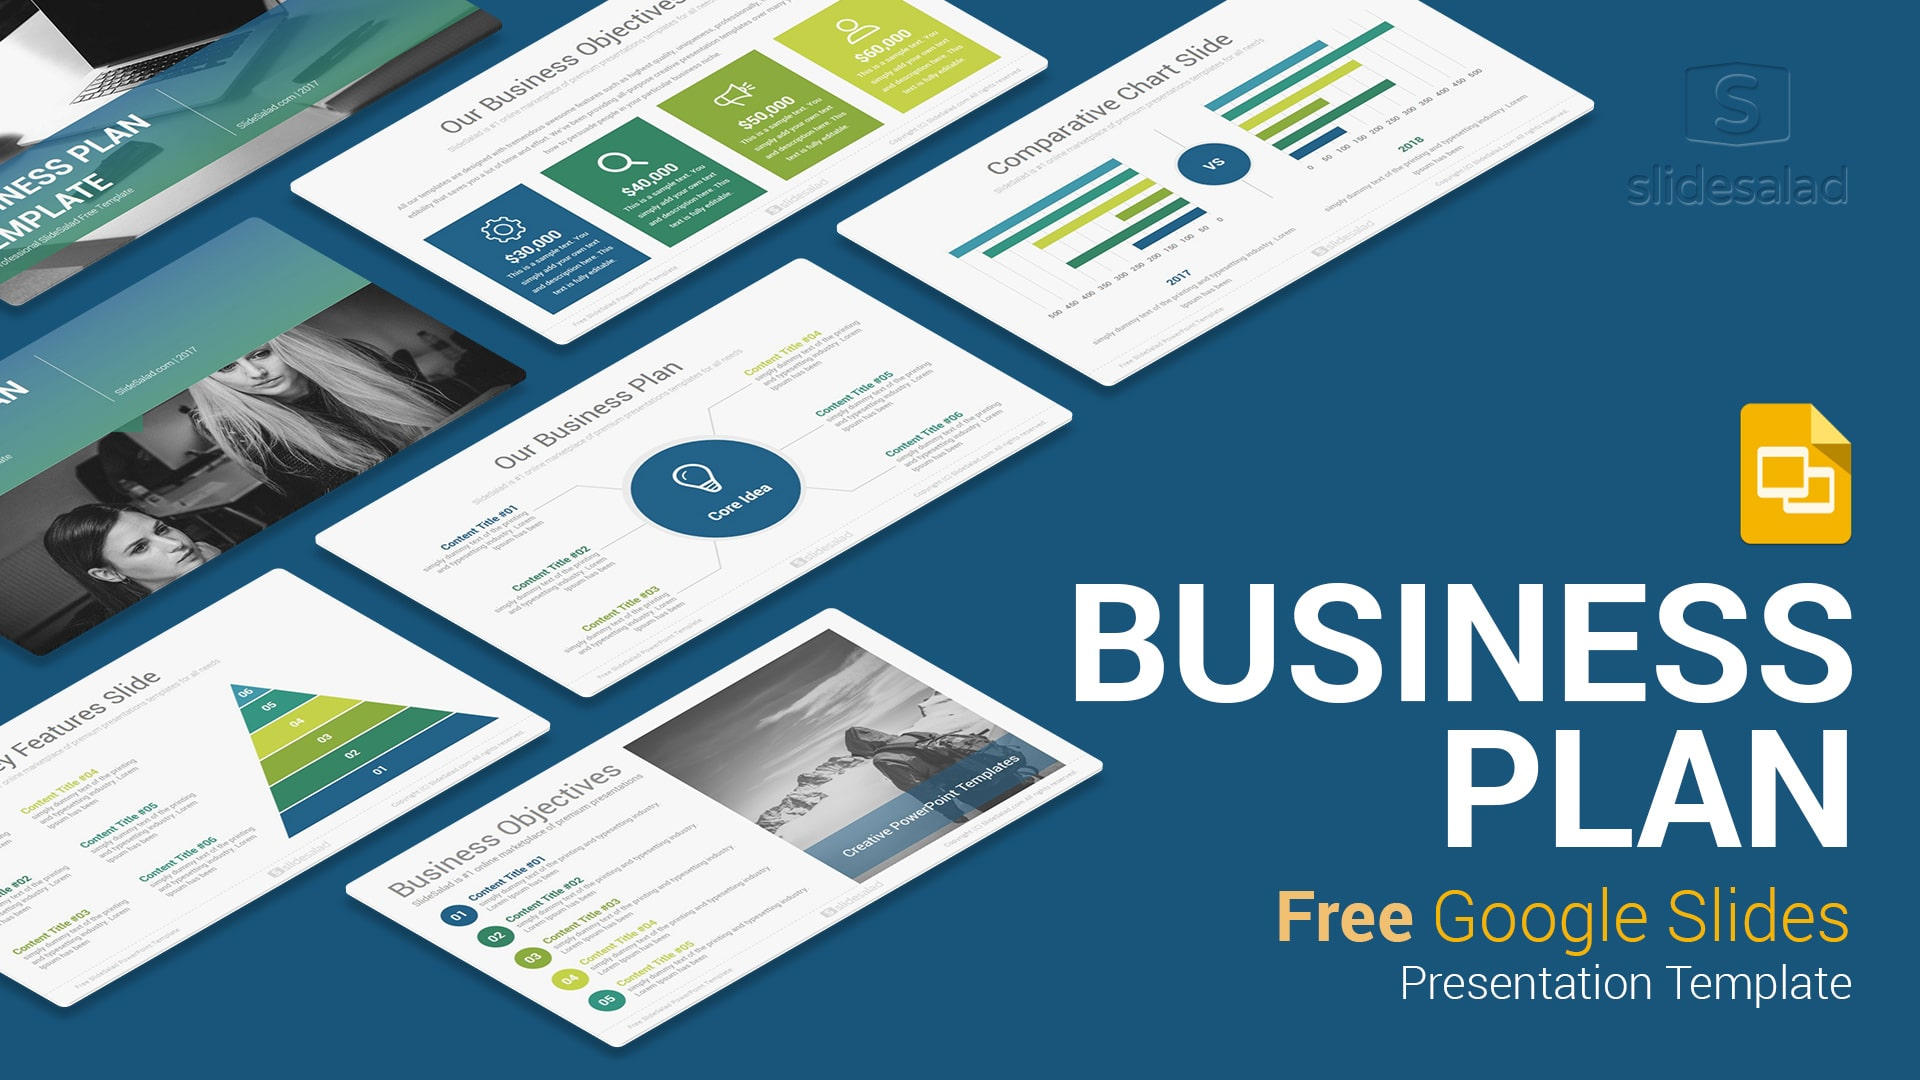 business plan free google slides presentation template